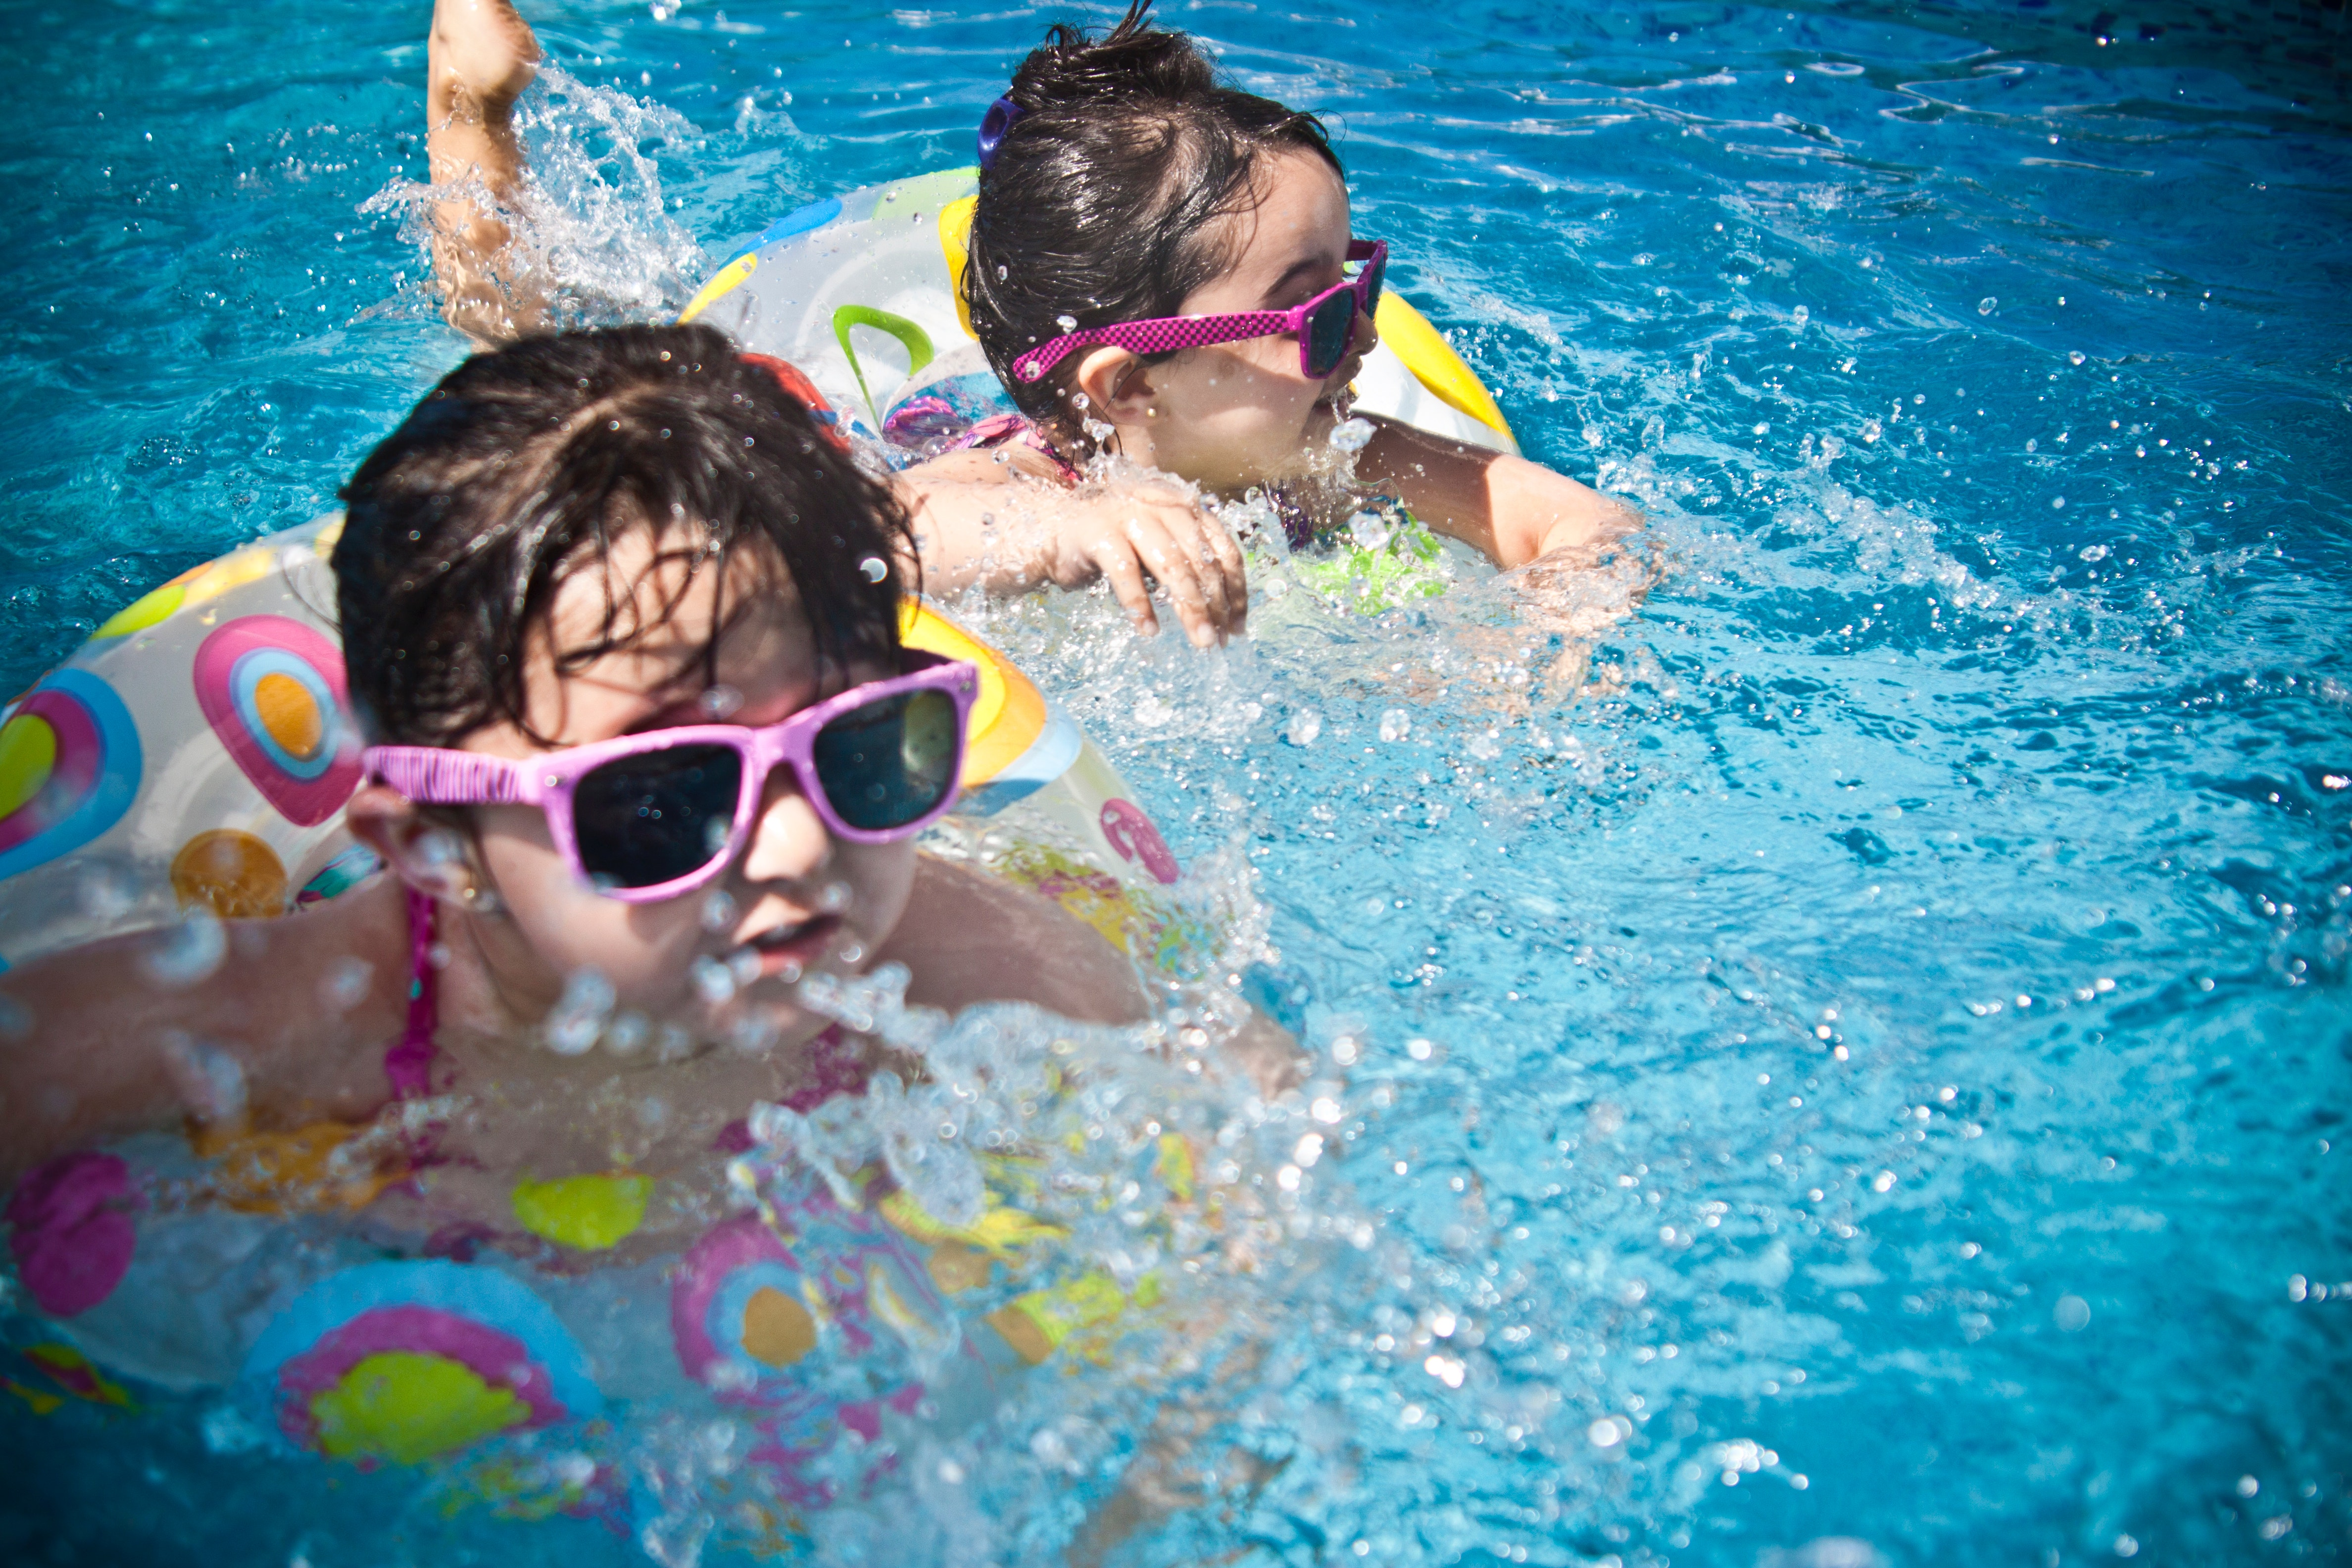 Protect Children and Pets in Hot Weather